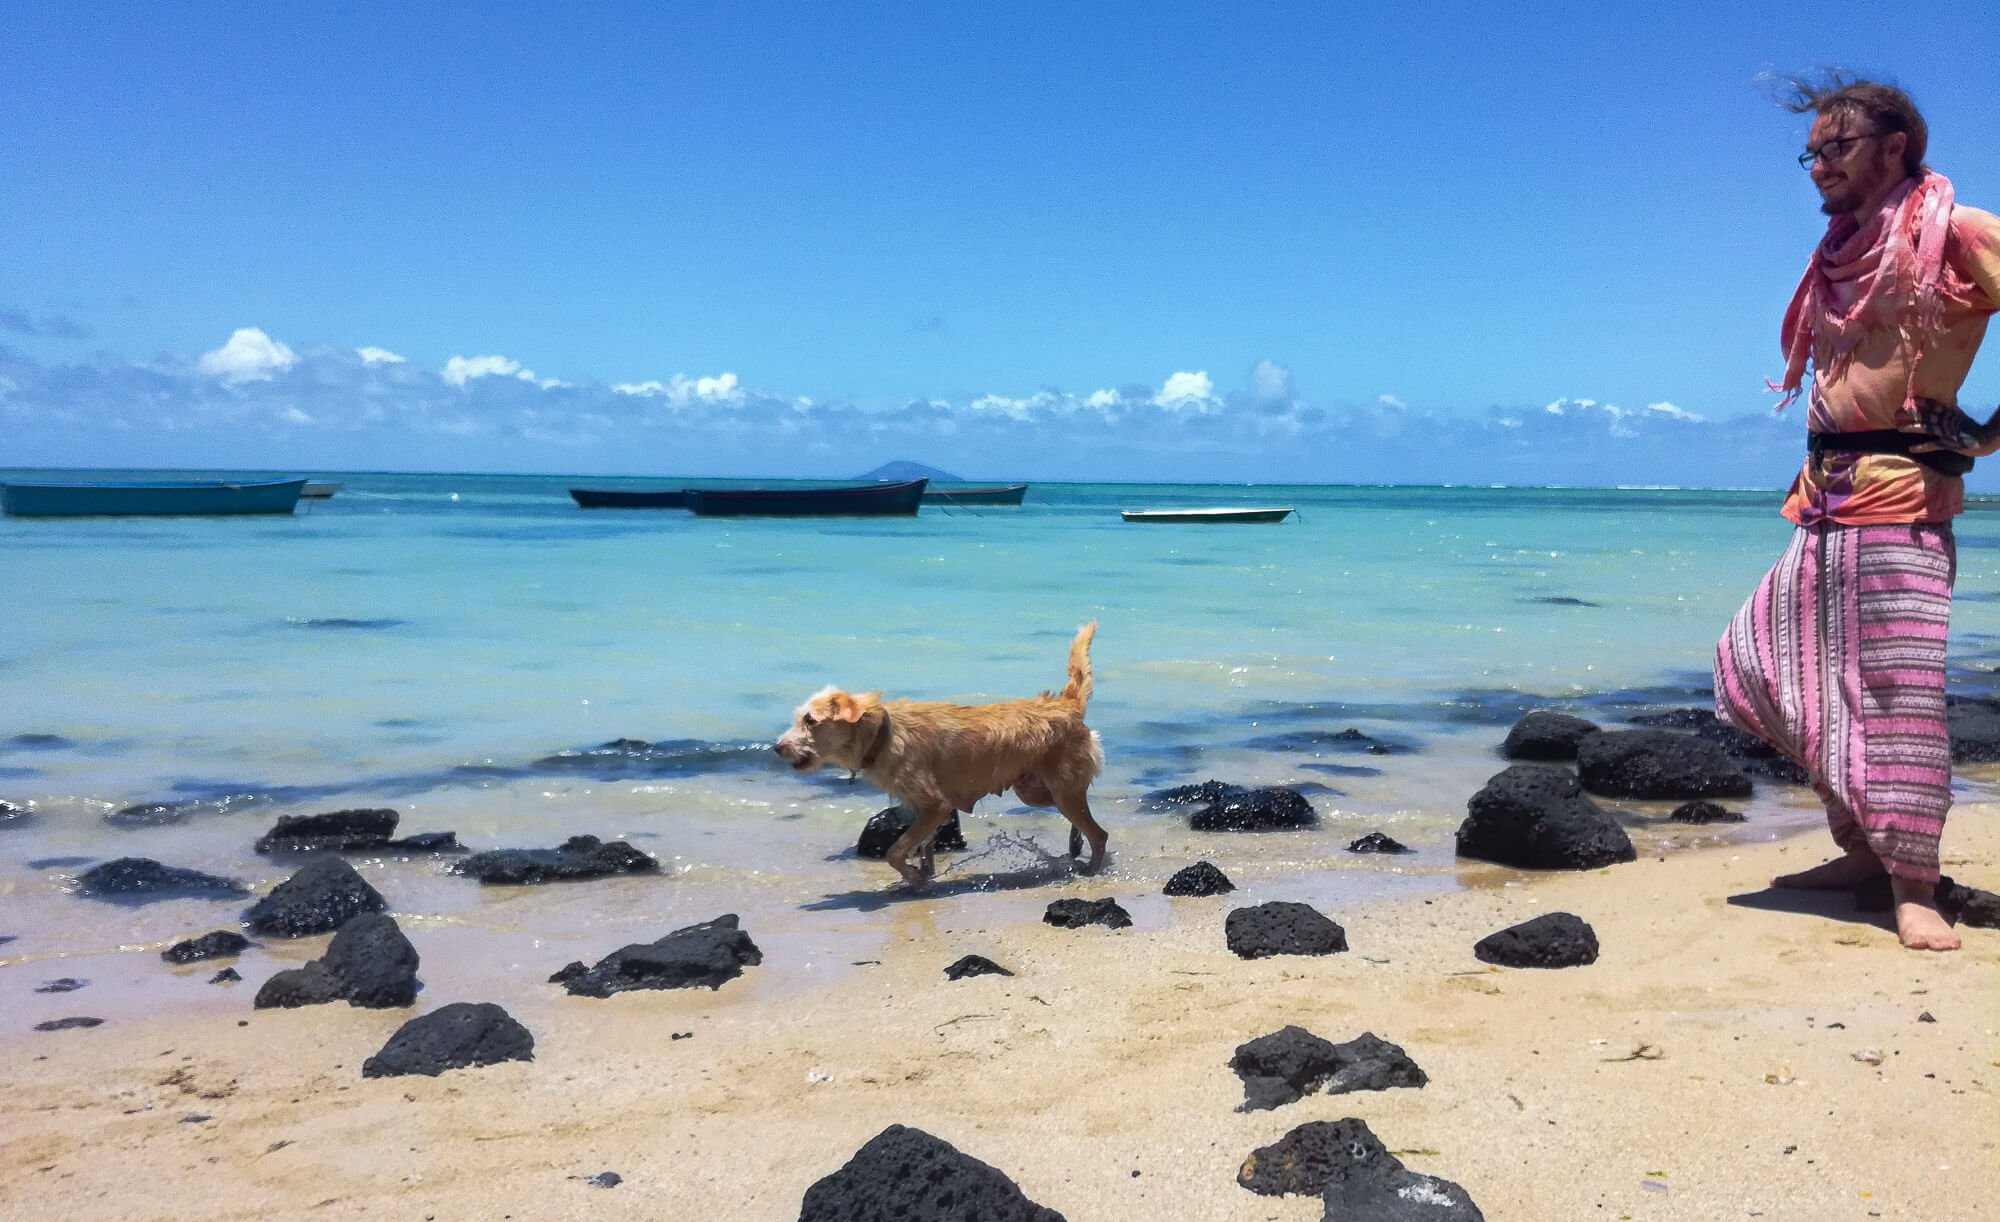 A backpacker visiting Mauritius walking with a dog on a public beach